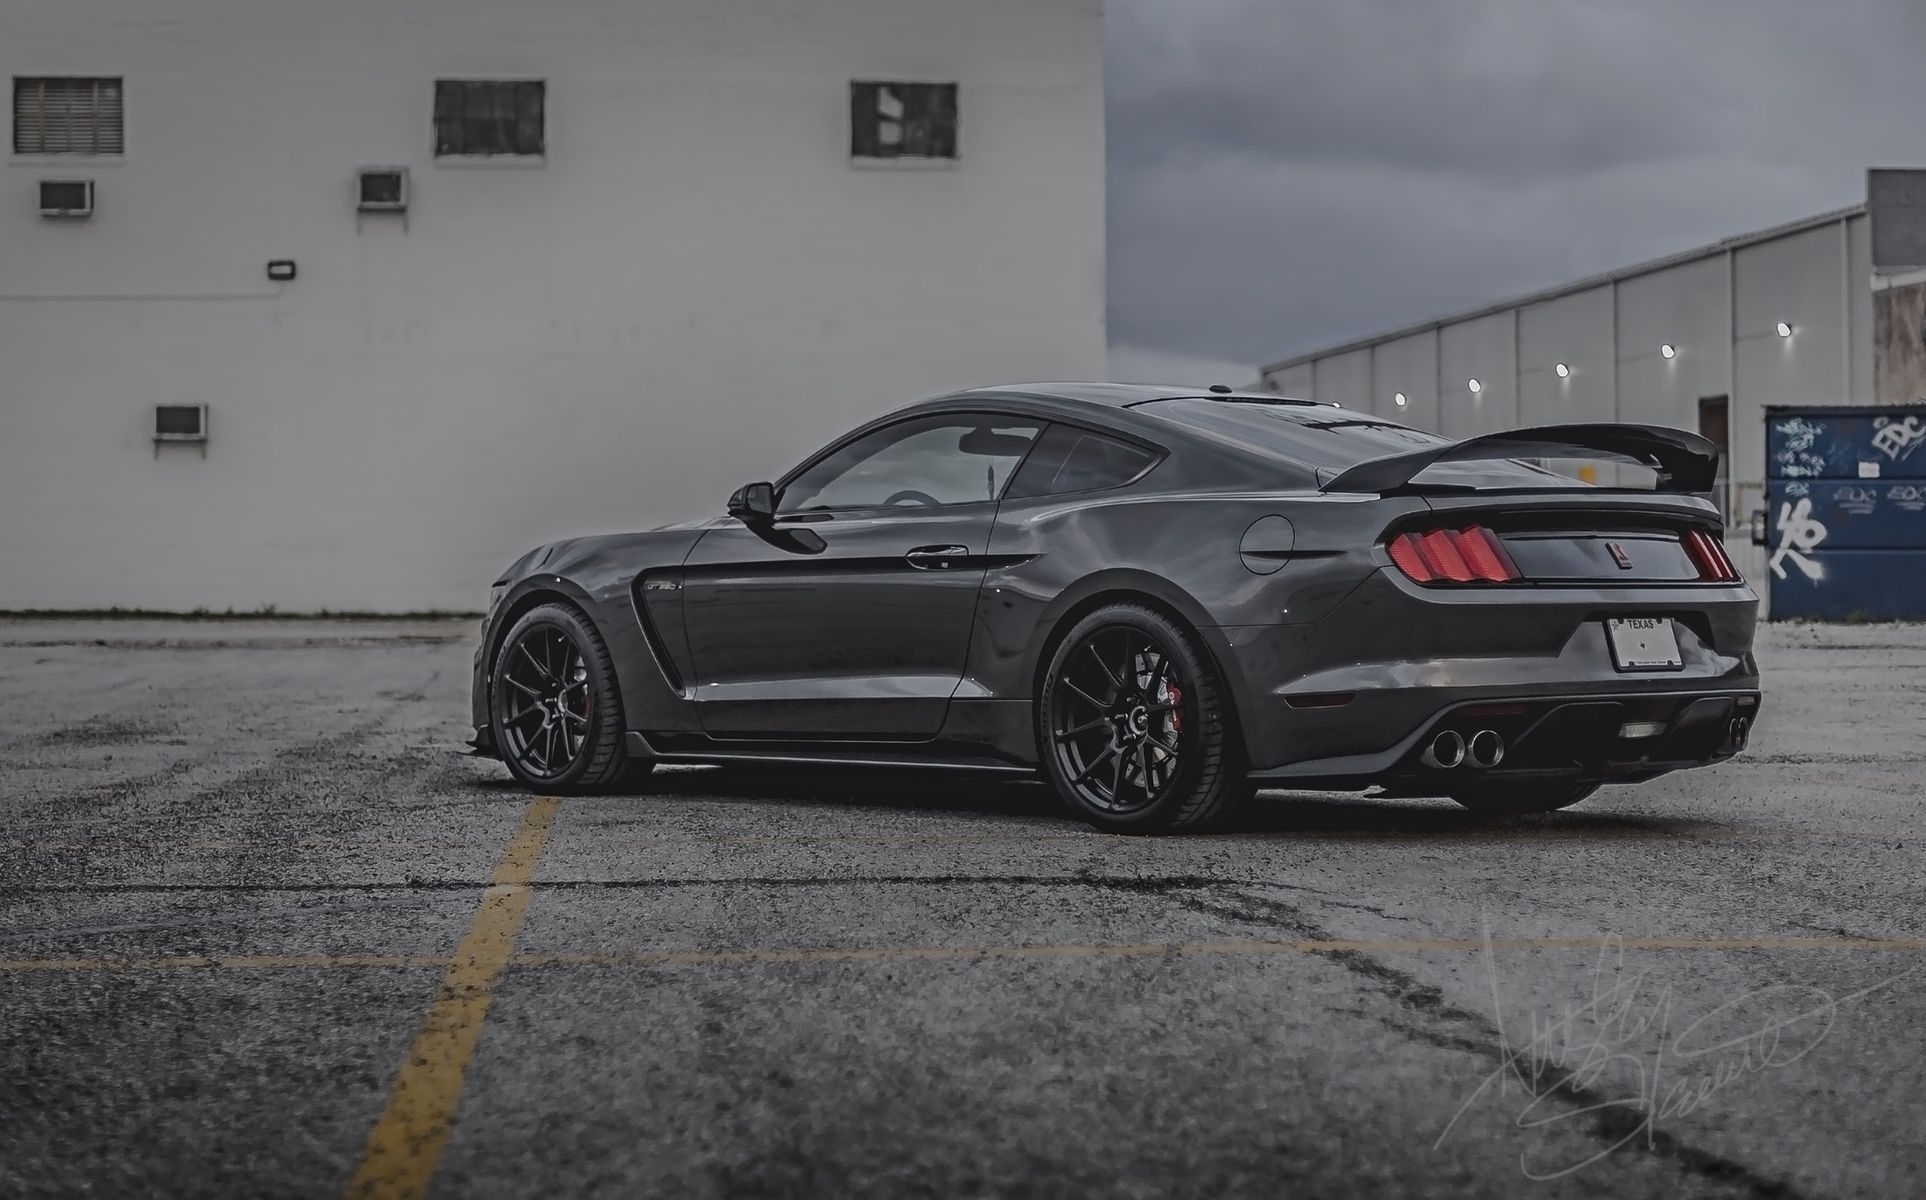 2017 Ford Mustang | Ansley Stewart's Mustang Shelby GT350R on Forgeline One Piece Forged Monoblock GS1R Wheels